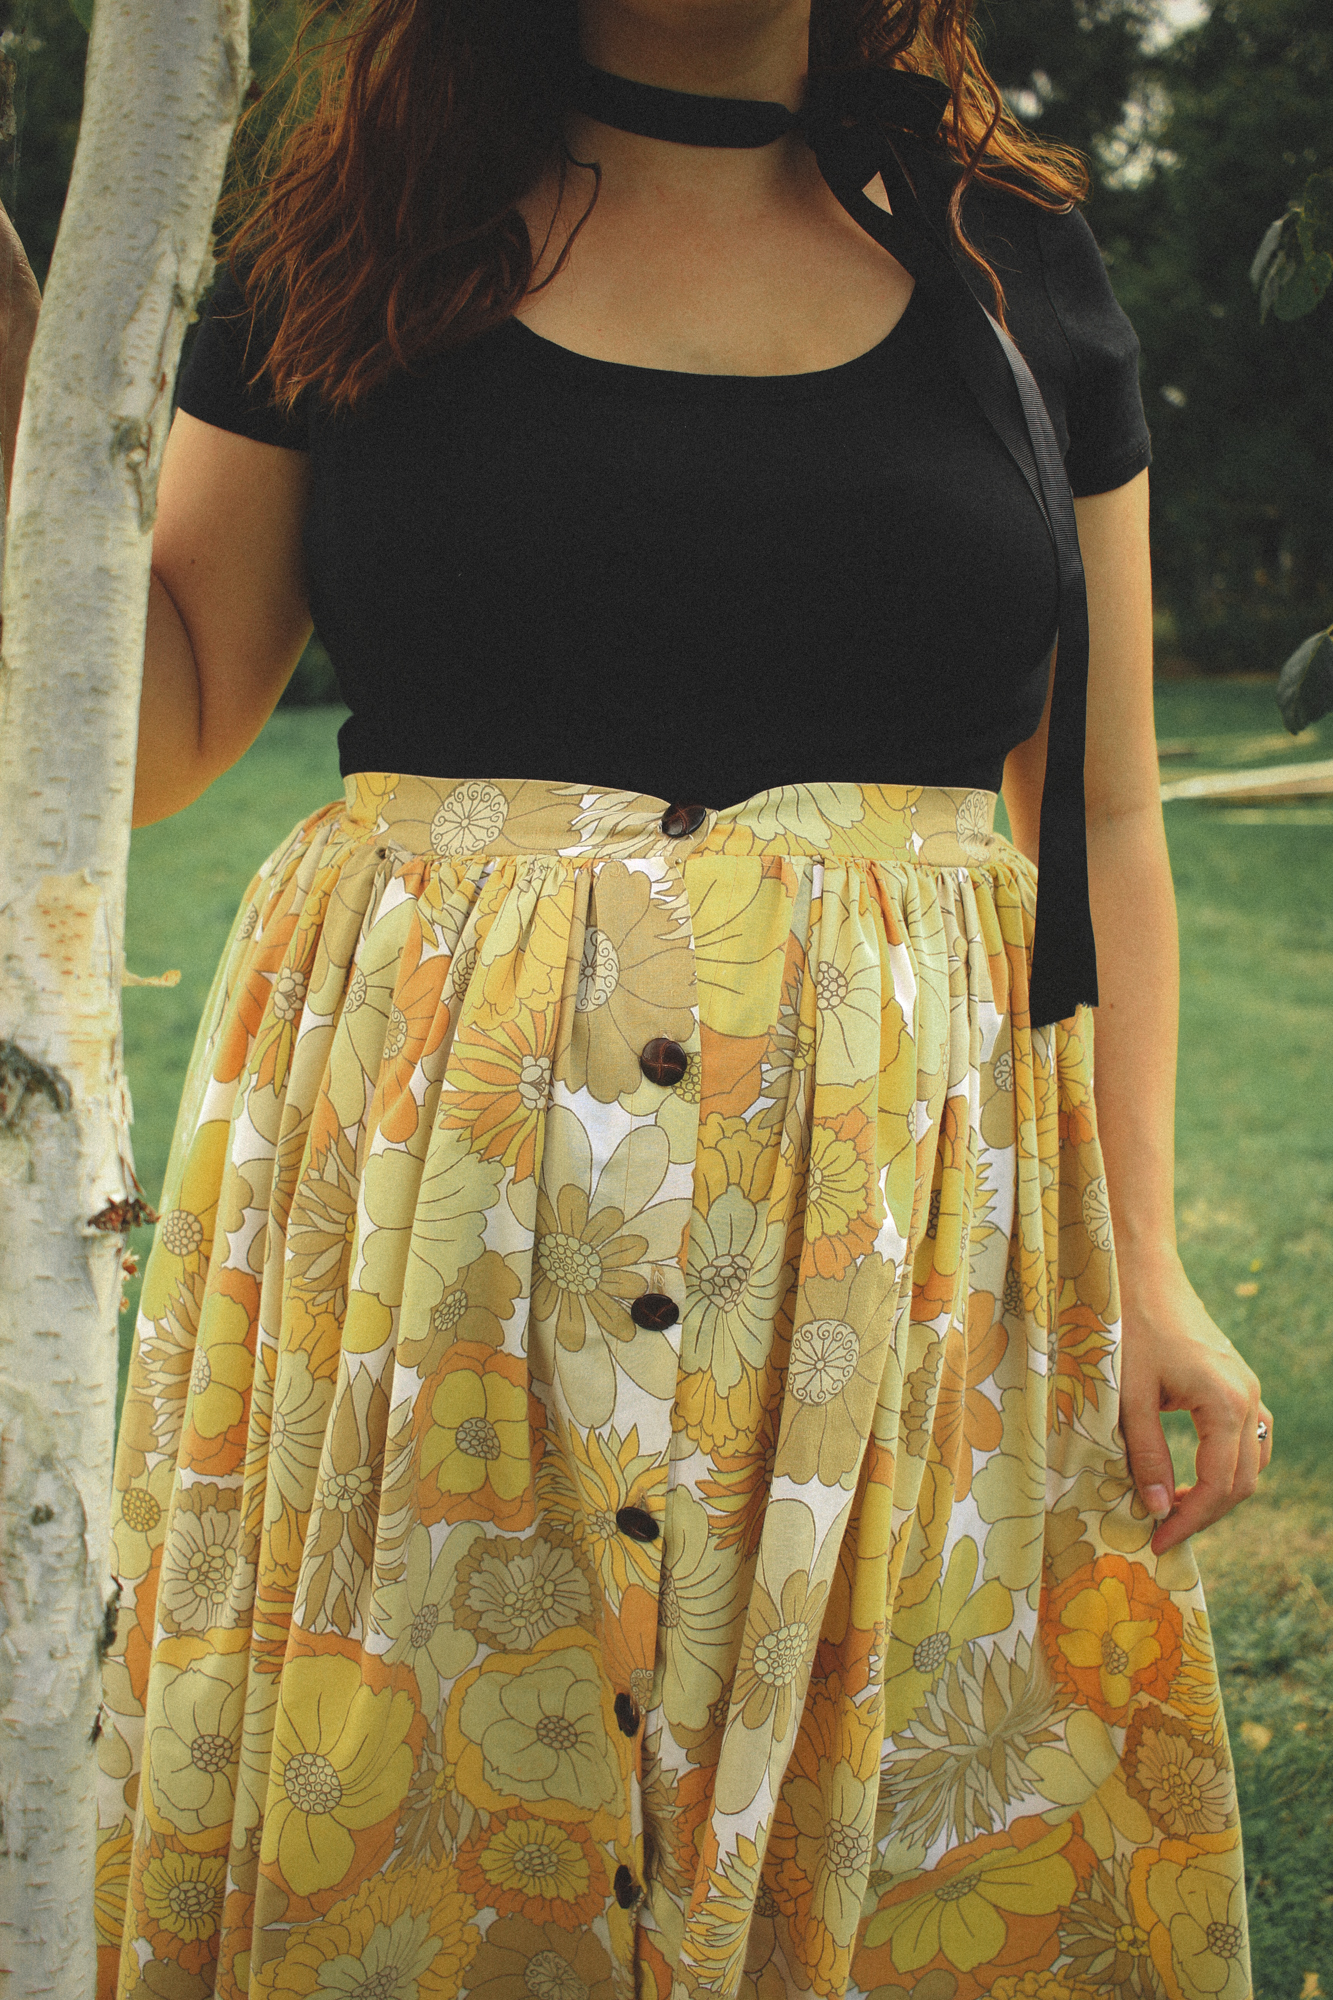 detail of a black top and a floral skirt outfit